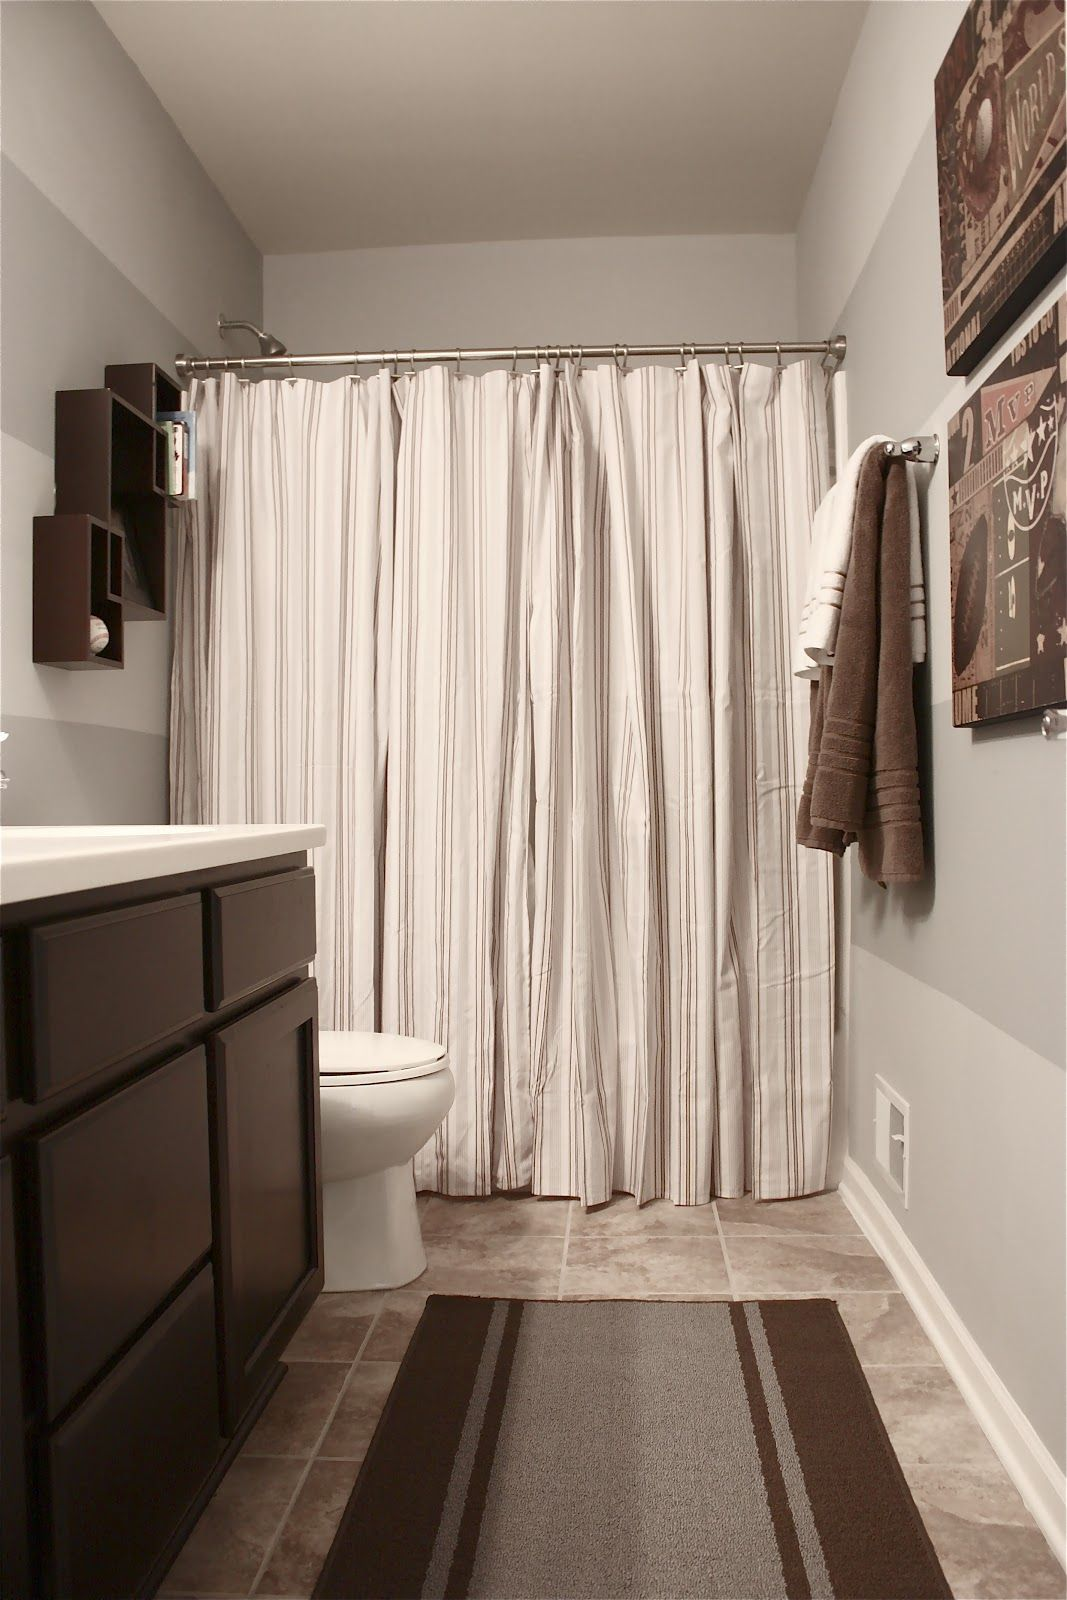 Great Idea Two Shower Curtains And A Regular Rug I Want These Stripes The Cabinets And This Two Shower Curtains Cream Shower Curtains Brown Shower Curtain [ 1600 x 1067 Pixel ]